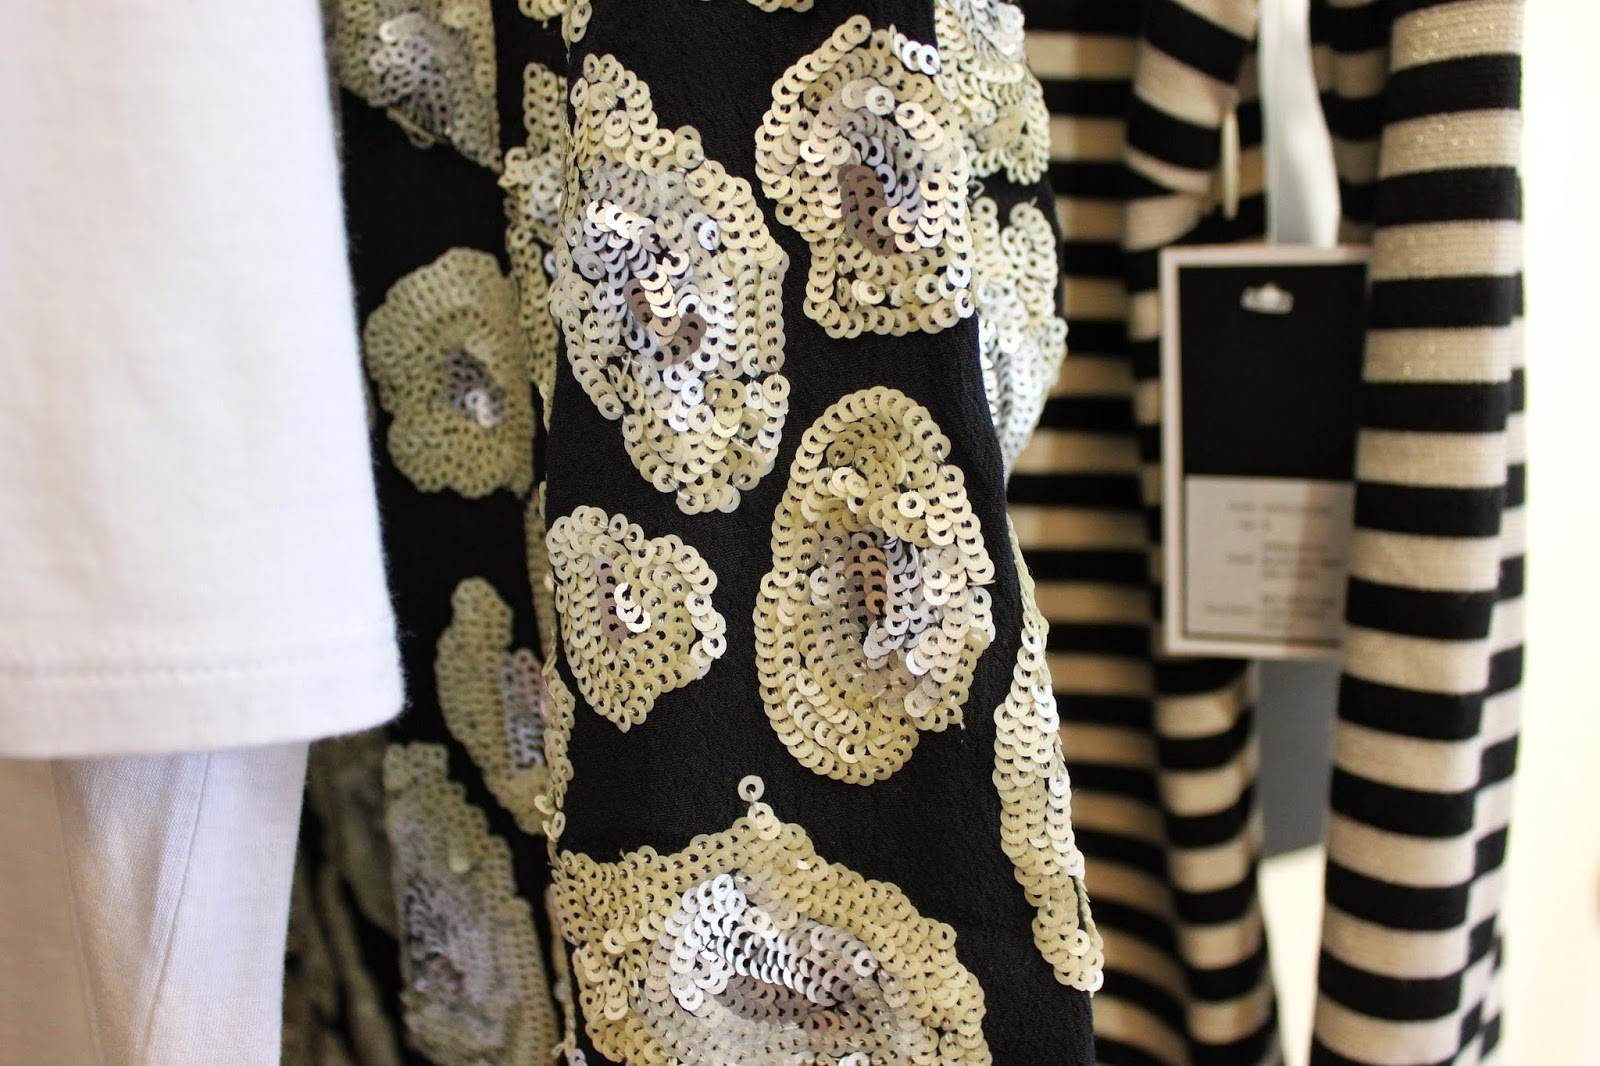 georgie-georgina-minter-brown-fashion-blogger-actress-juicy-couture-press-day-fall-2015-clothes-style-new-outfits-sequins